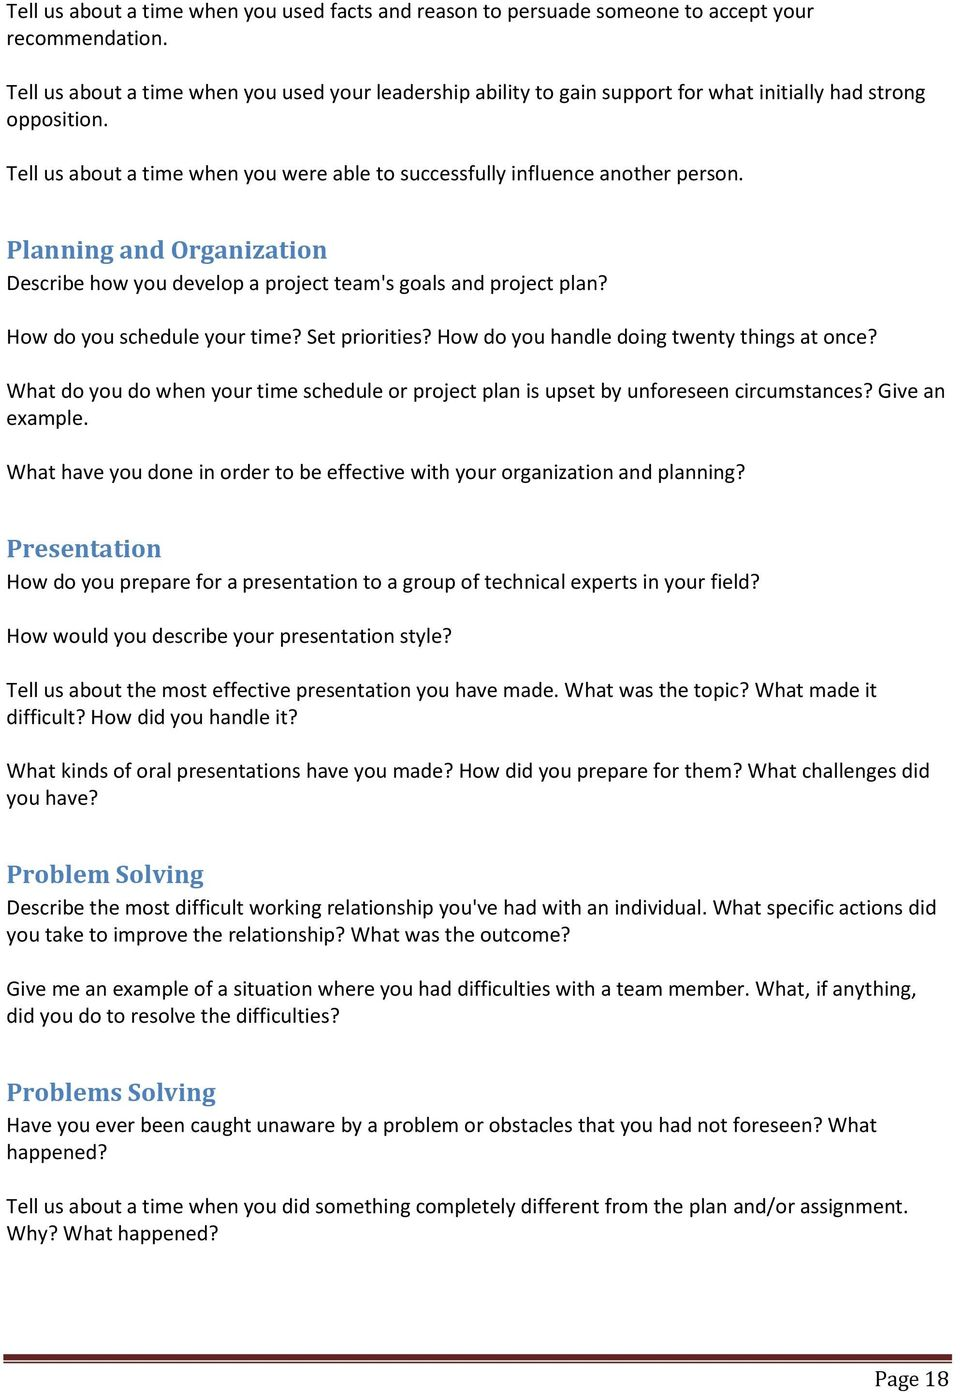 Planning and Organization Describe how you develop a project team's goals and project plan? How do you schedule your time? Set priorities? How do you handle doing twenty things at once?